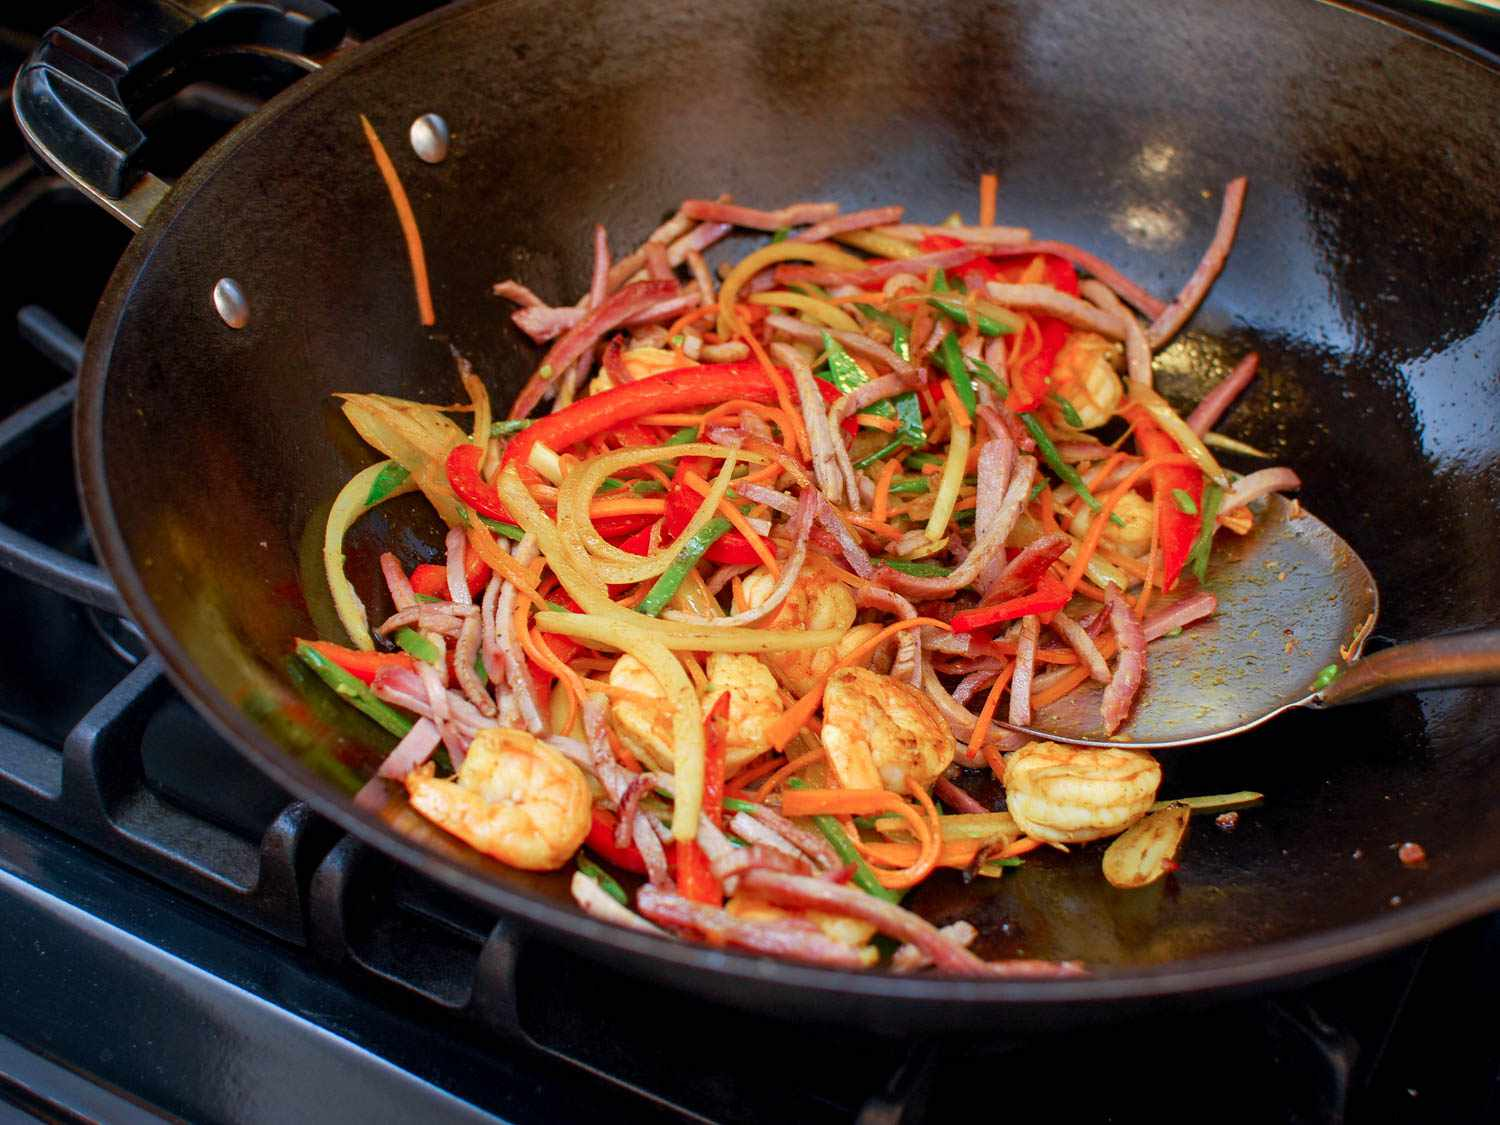 A metal spatula stirring a wok full of shrimp, pork, onion, bell peppers, snow peas, carrots, and curry powder.